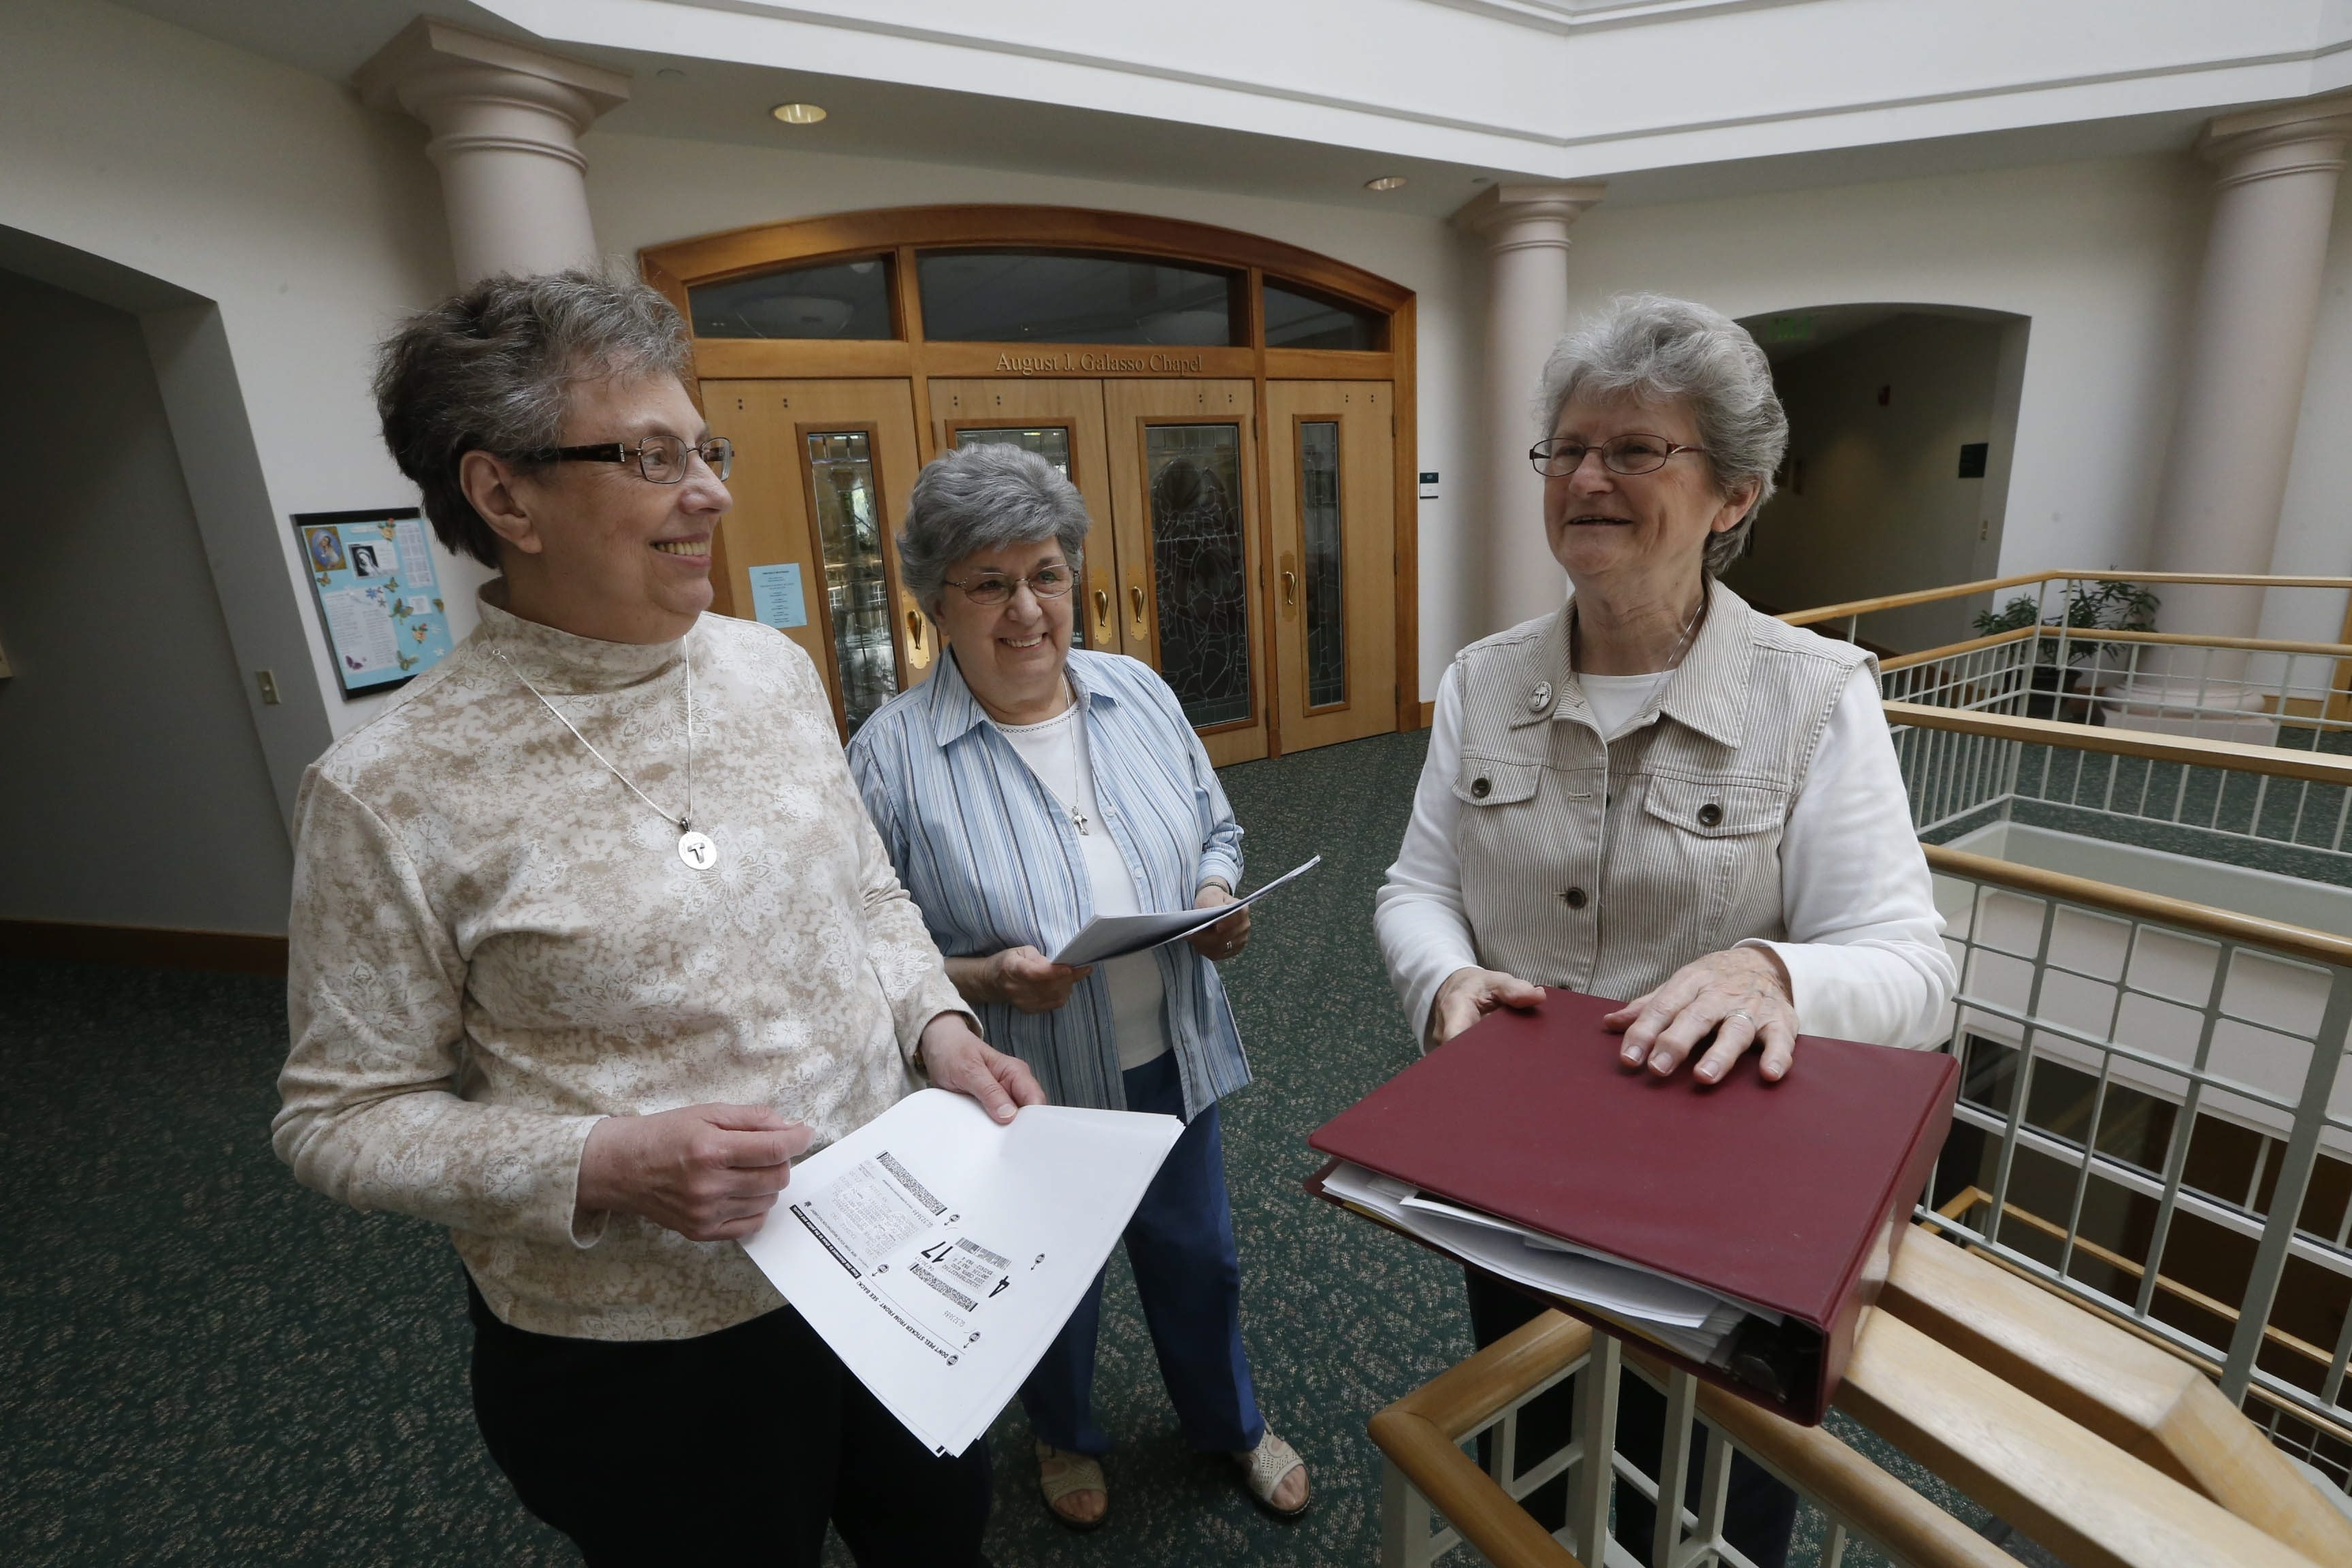 Sister Marian Rose Mansius, right, is coordinator of Life's Services at St. Mary of the Angels regional house on Reist Street. She and the rest of her committee are studying the long-term needs of the Franciscan community.